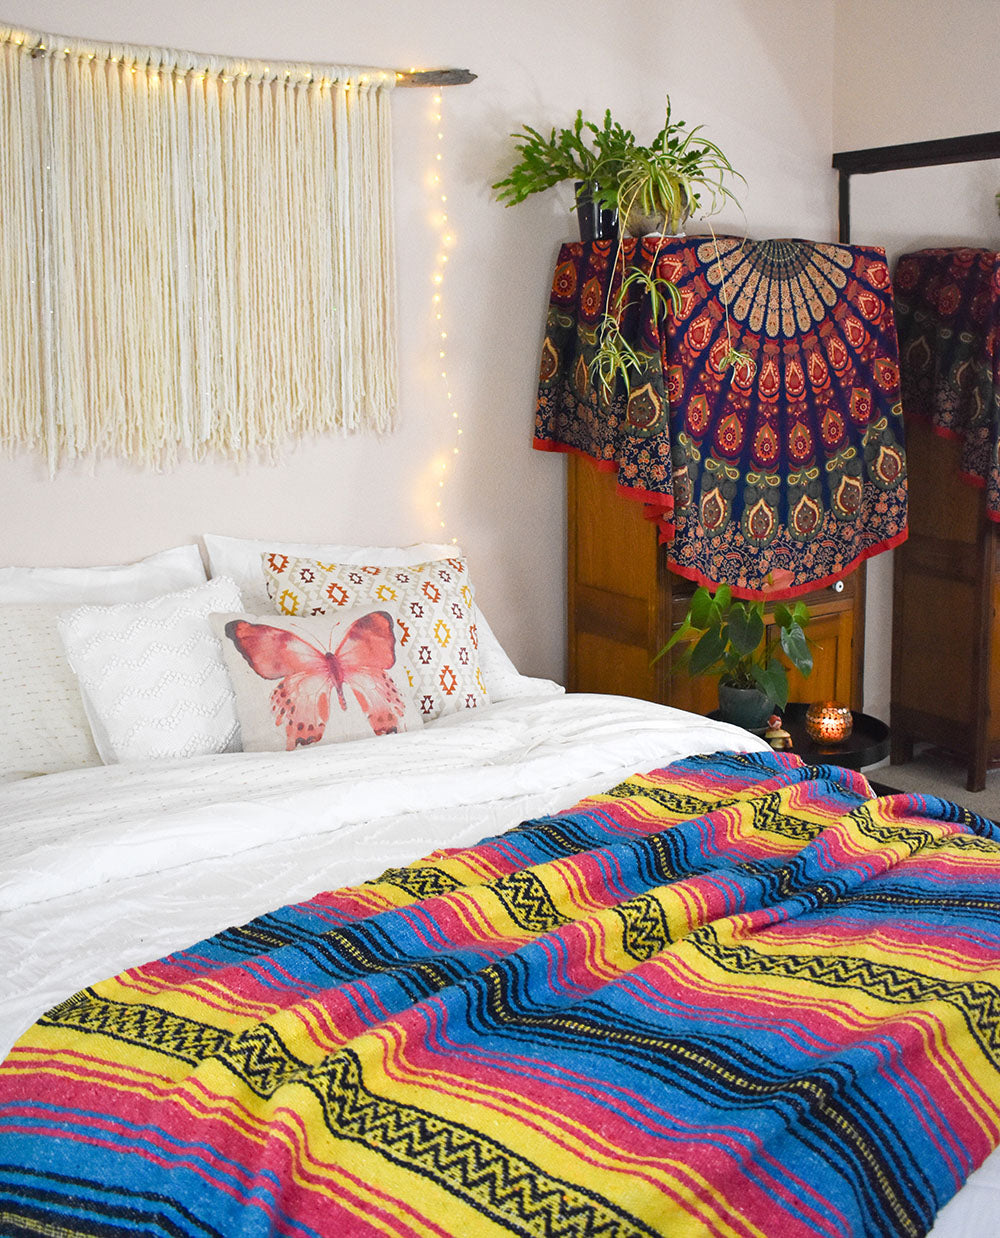 The Sunshine Day Dream blanket looks beautiful in the boho bedroom and adds so much color and warmth.